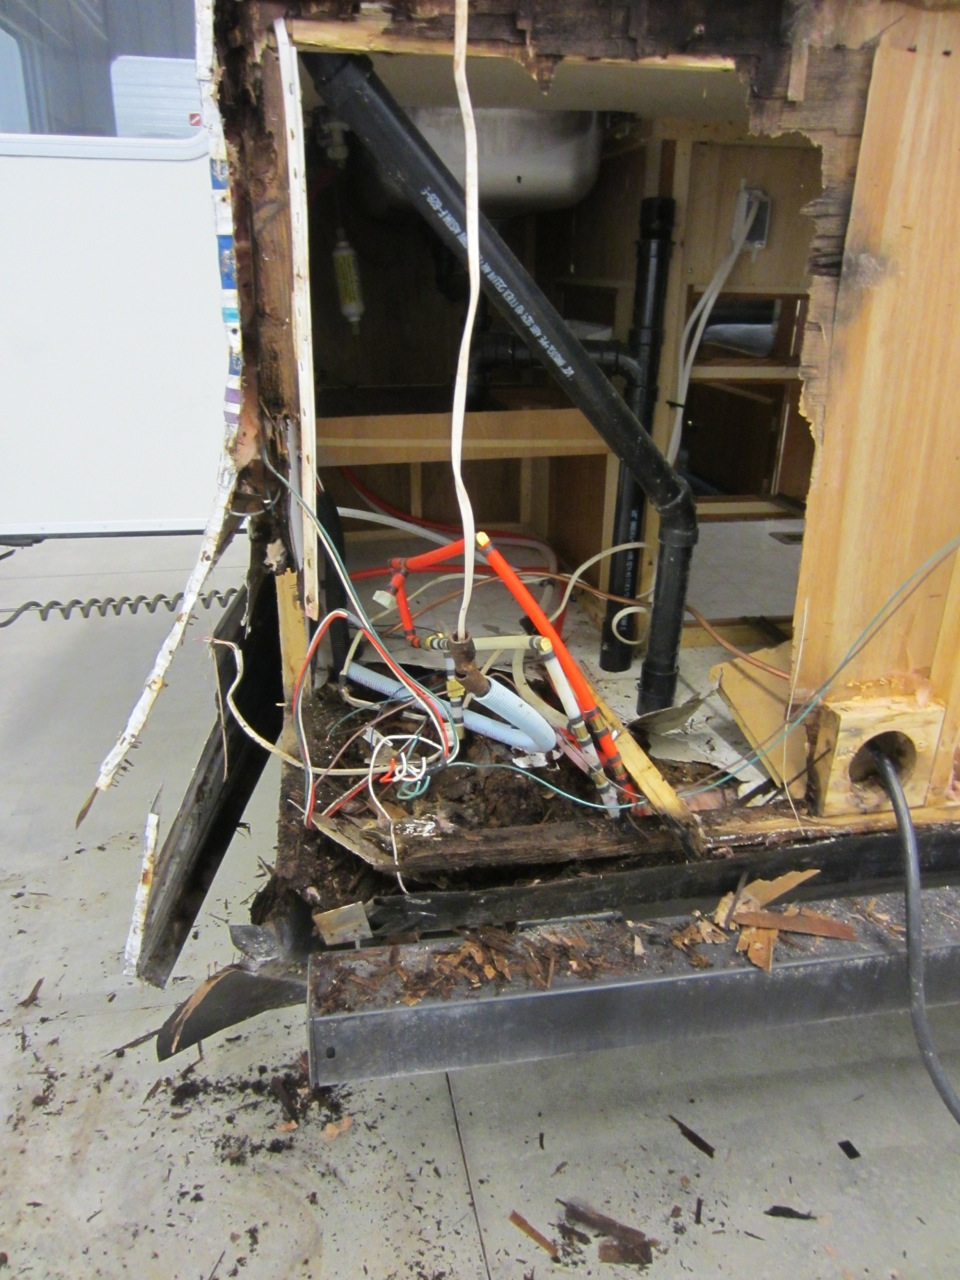 Then to top that off, we realized that the floor where the water heater was sitting on was also rotted.